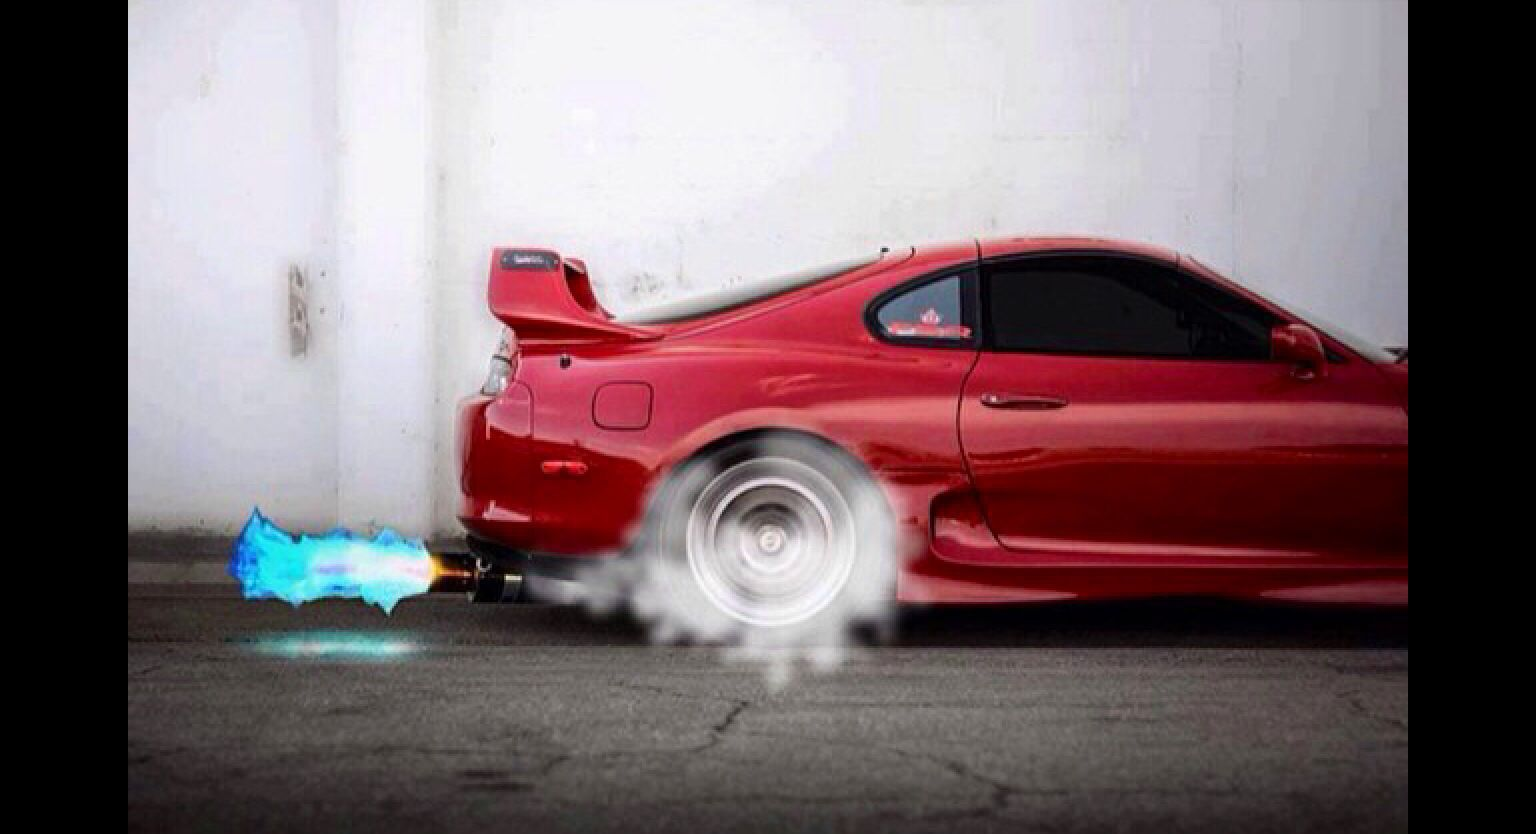 Etonnant Explore Toyota Supra, Japanese Cars And More! Blue Fire Back Fire  Supra